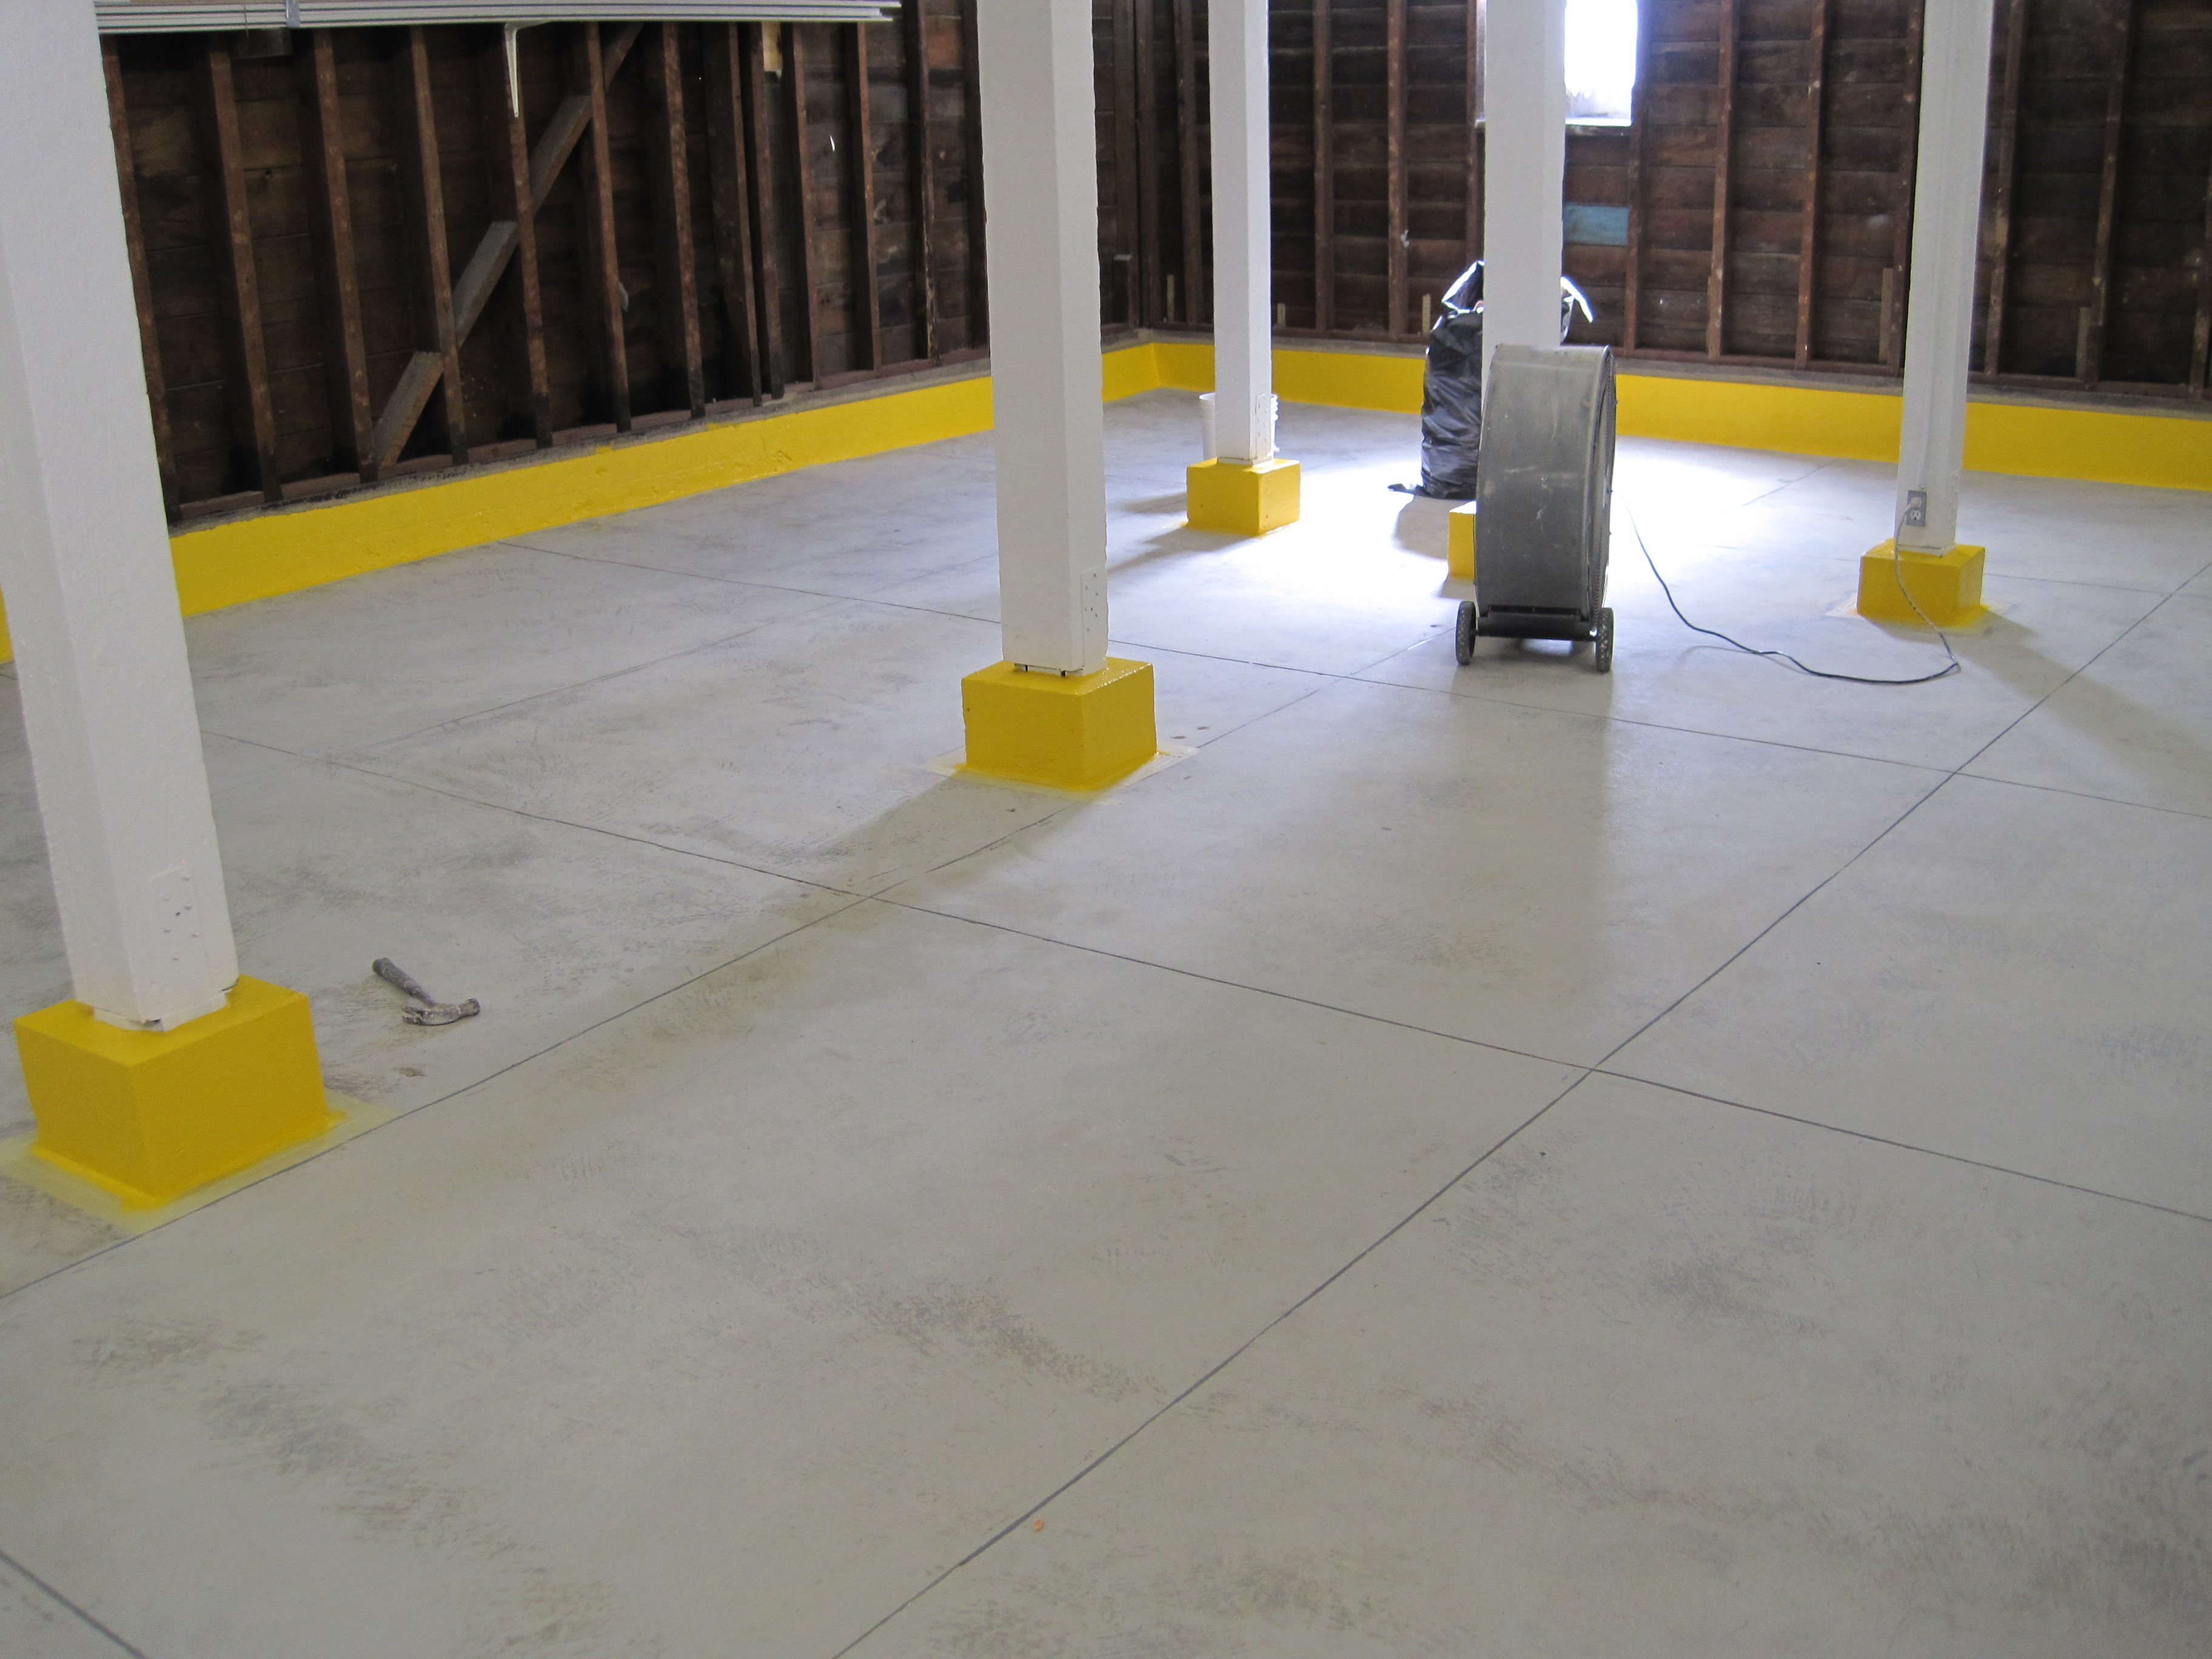 Bare floor prior to coating